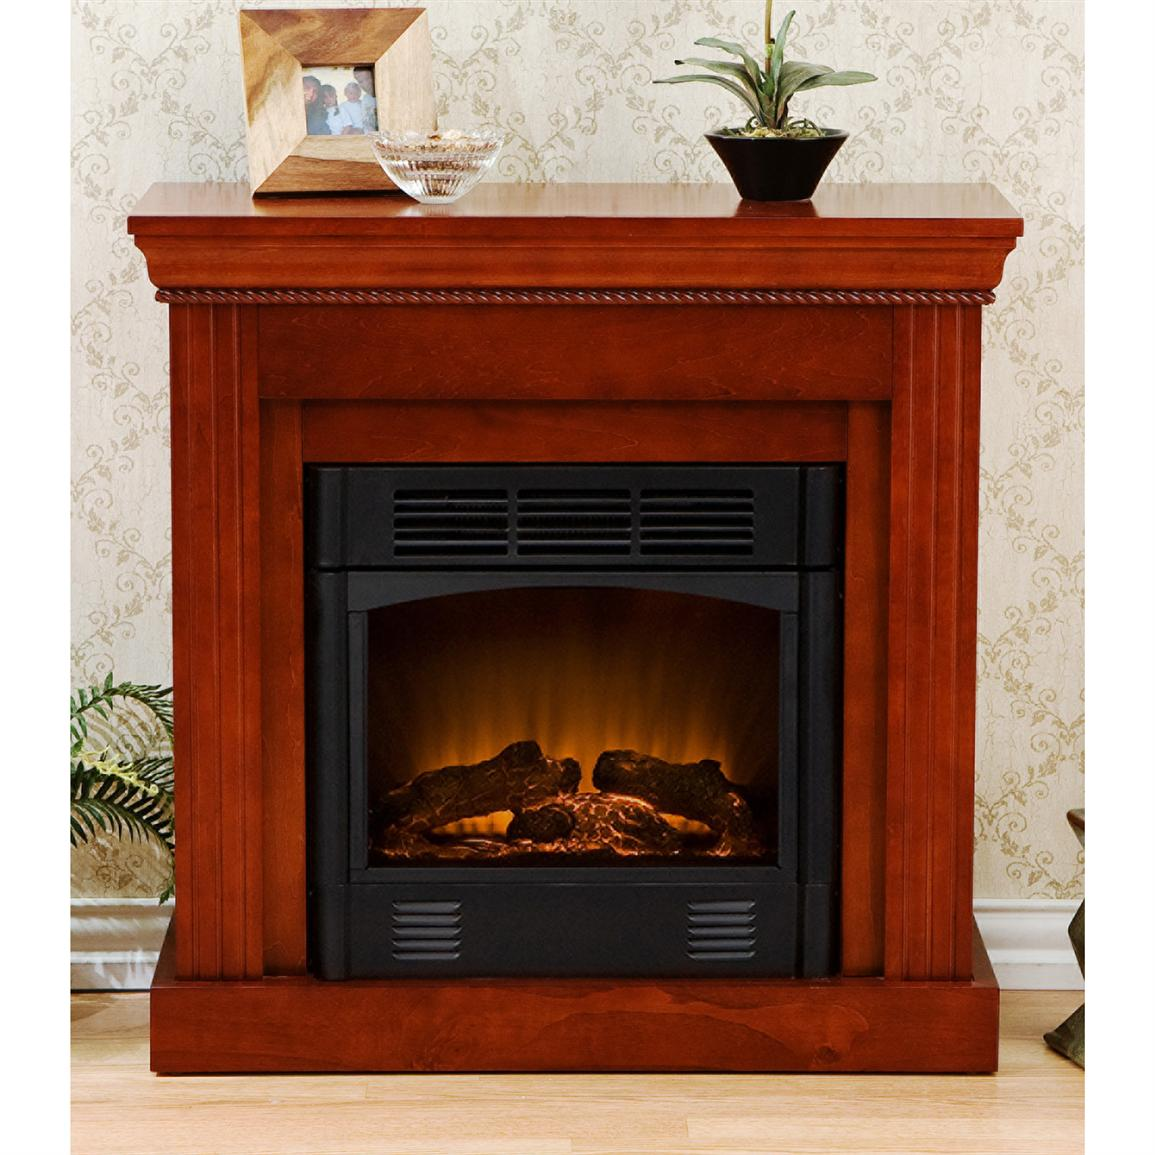 Southern Enterprises Inc Walden Electric Fireplace 176142 Fireplaces At Sportsman 39 S Guide